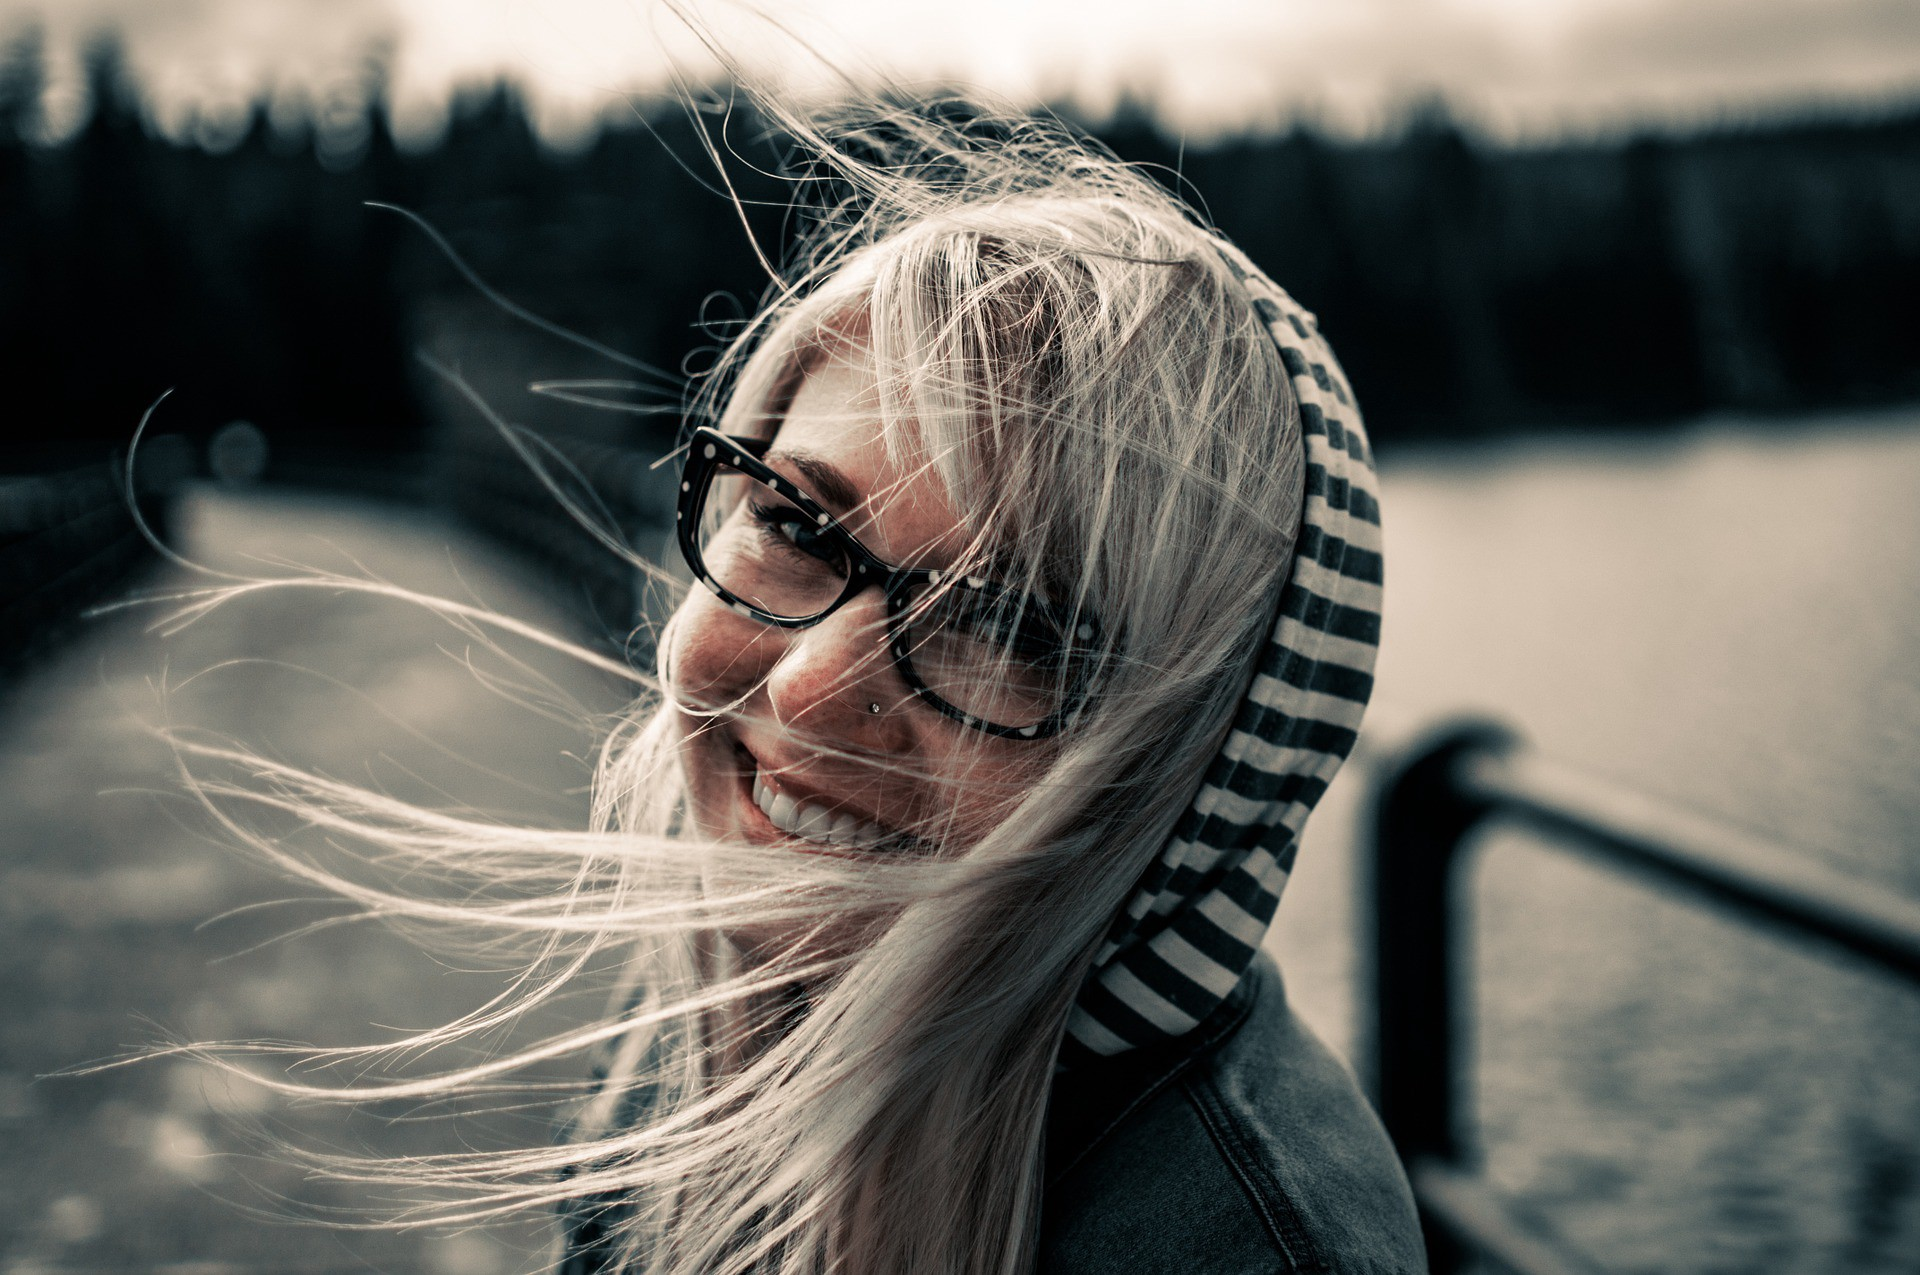 Smiling woman with her hair blowing by a lake. How Using Your Personal Power Can Change the World.